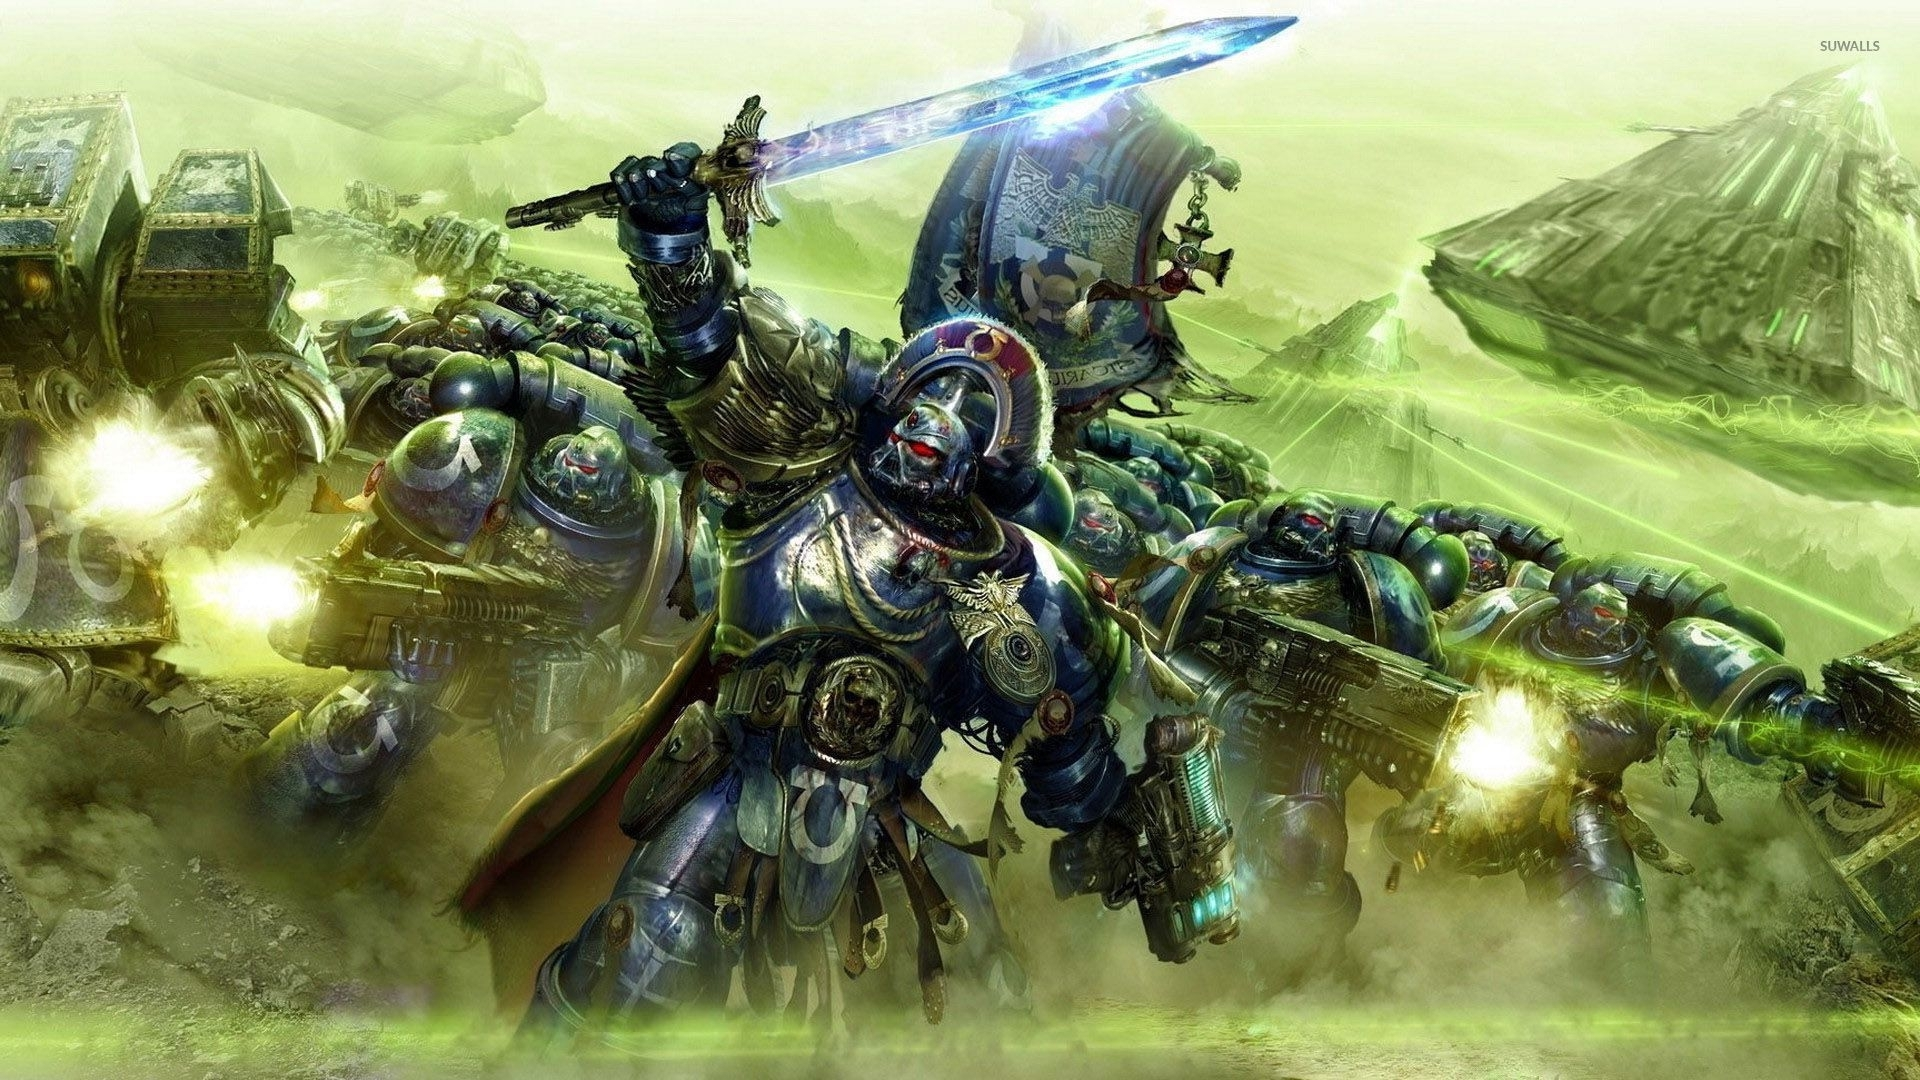 ultramarines - warhammer 40,000 wallpaper - game wallpapers - #29270